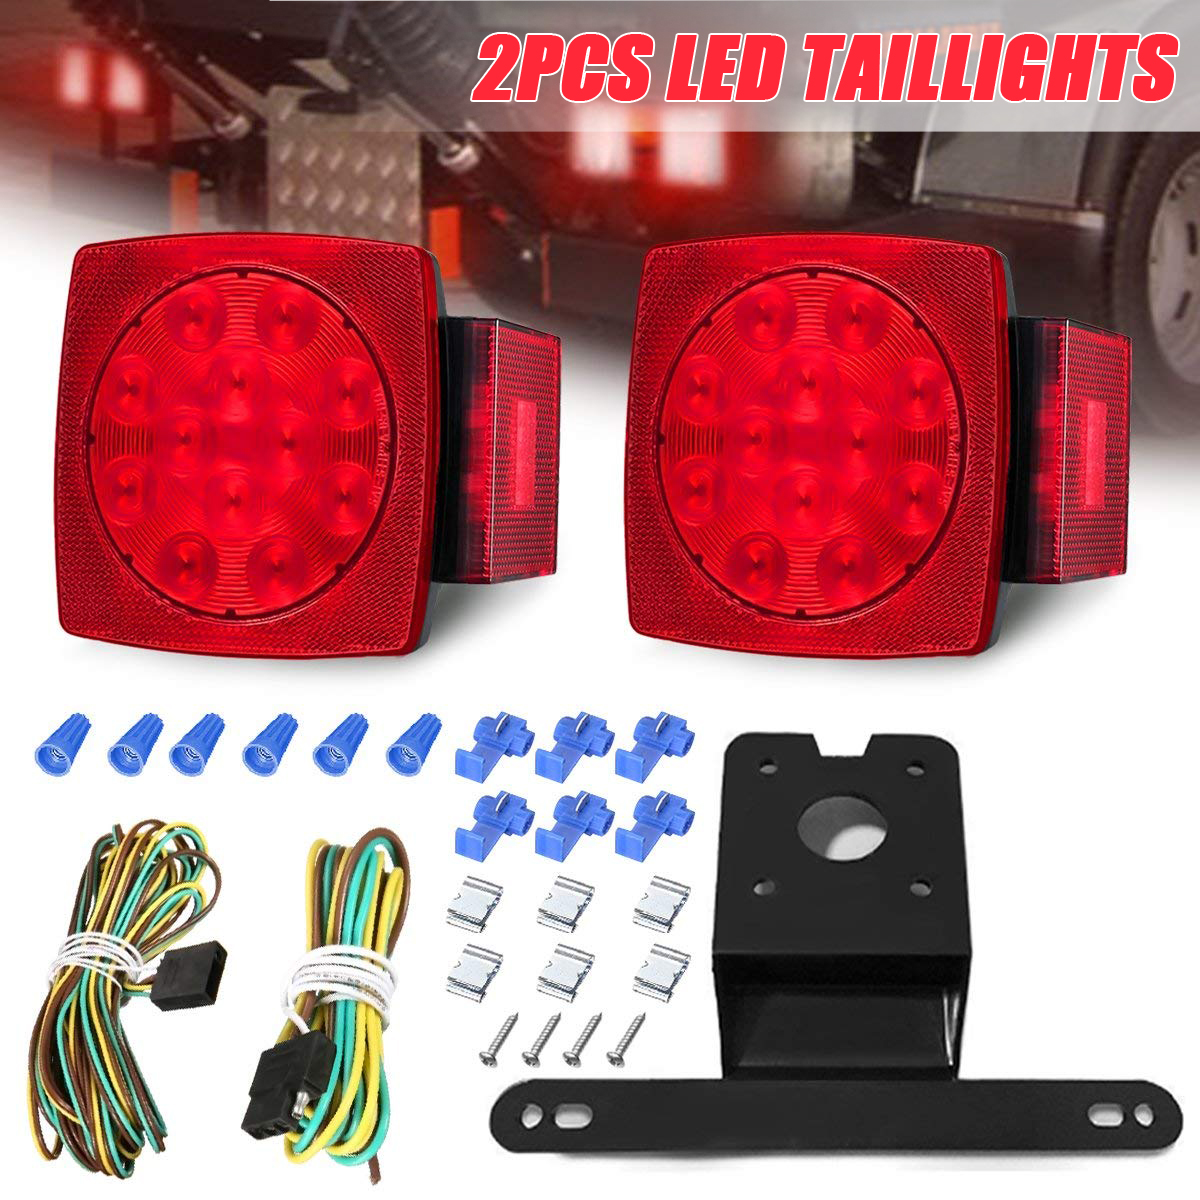 Submersible Tail Lights for: RV Boat Wellmax 12V LED Trailer Lights Kit Marine for All Outdoor terrains Over 80 inches Trailer DOT Compliant